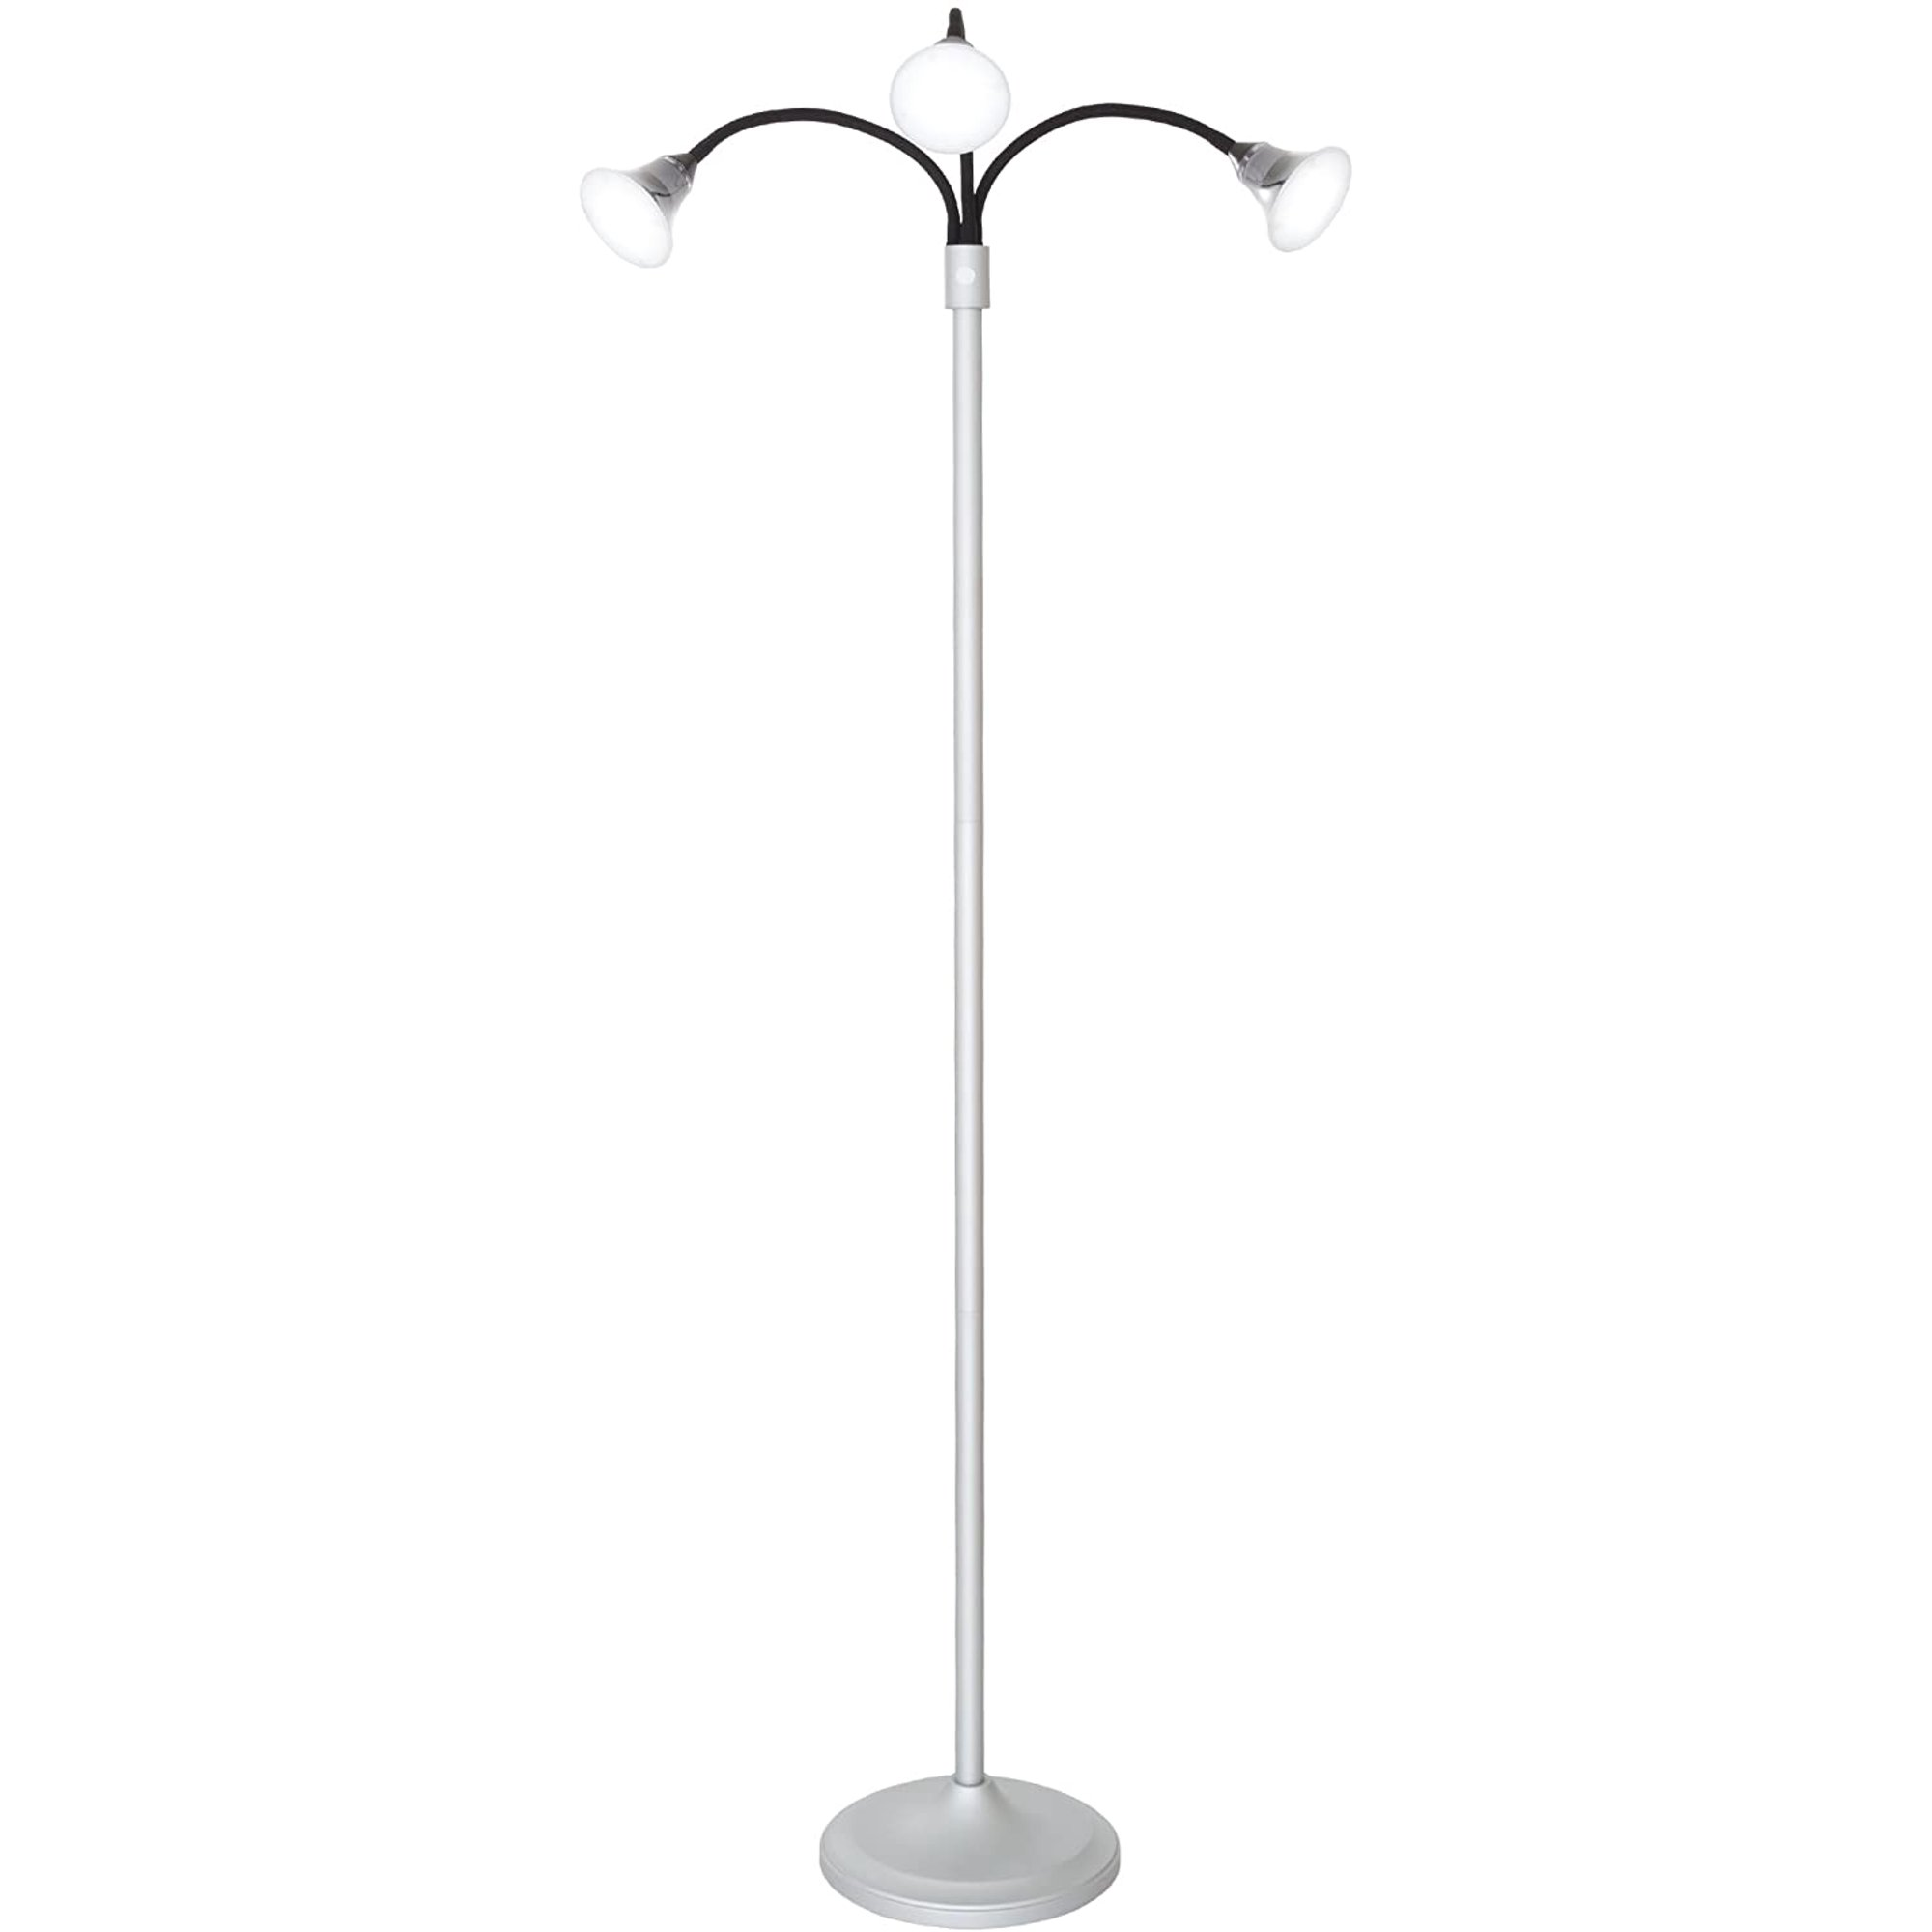 Floor Lamp Led Light, Floor Lamp With Dimmer Switch And Adjustable Arm